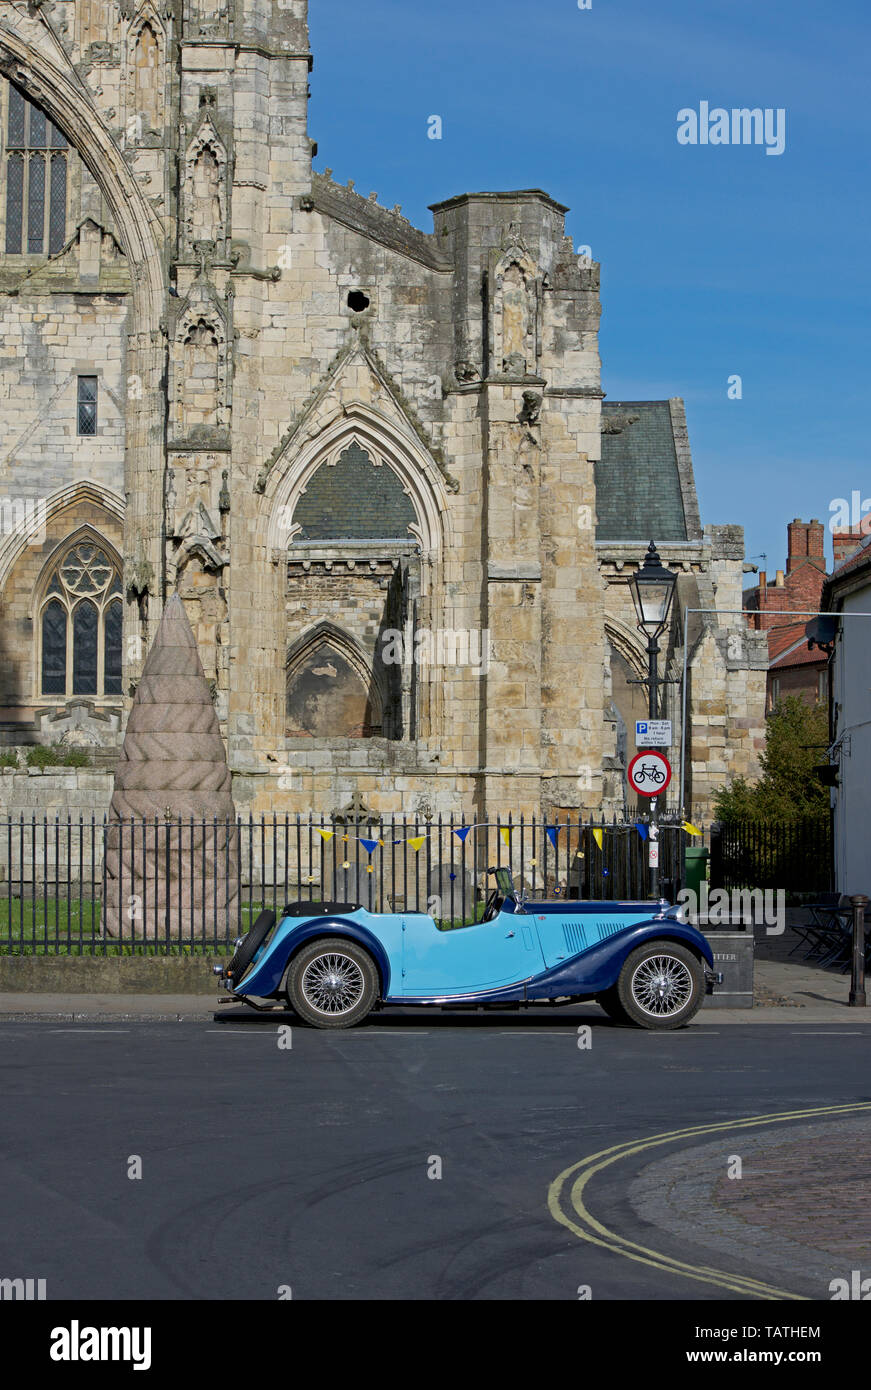 mg-sports-car-parked-in-front-of-the-minster-howden-east-yorkshire-england-uk-TATHEM.jpg